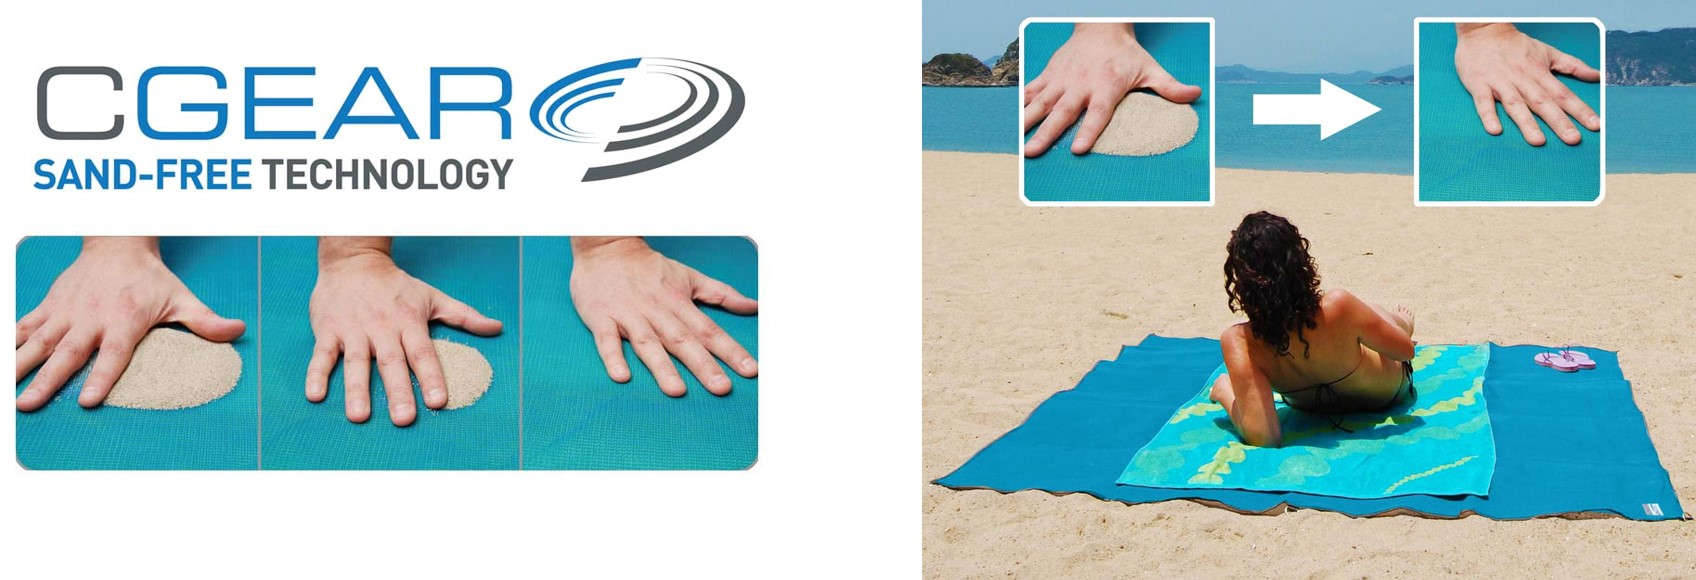 Sandless Beach Mat CGear - Madeira, Portugal - travel to Madeira